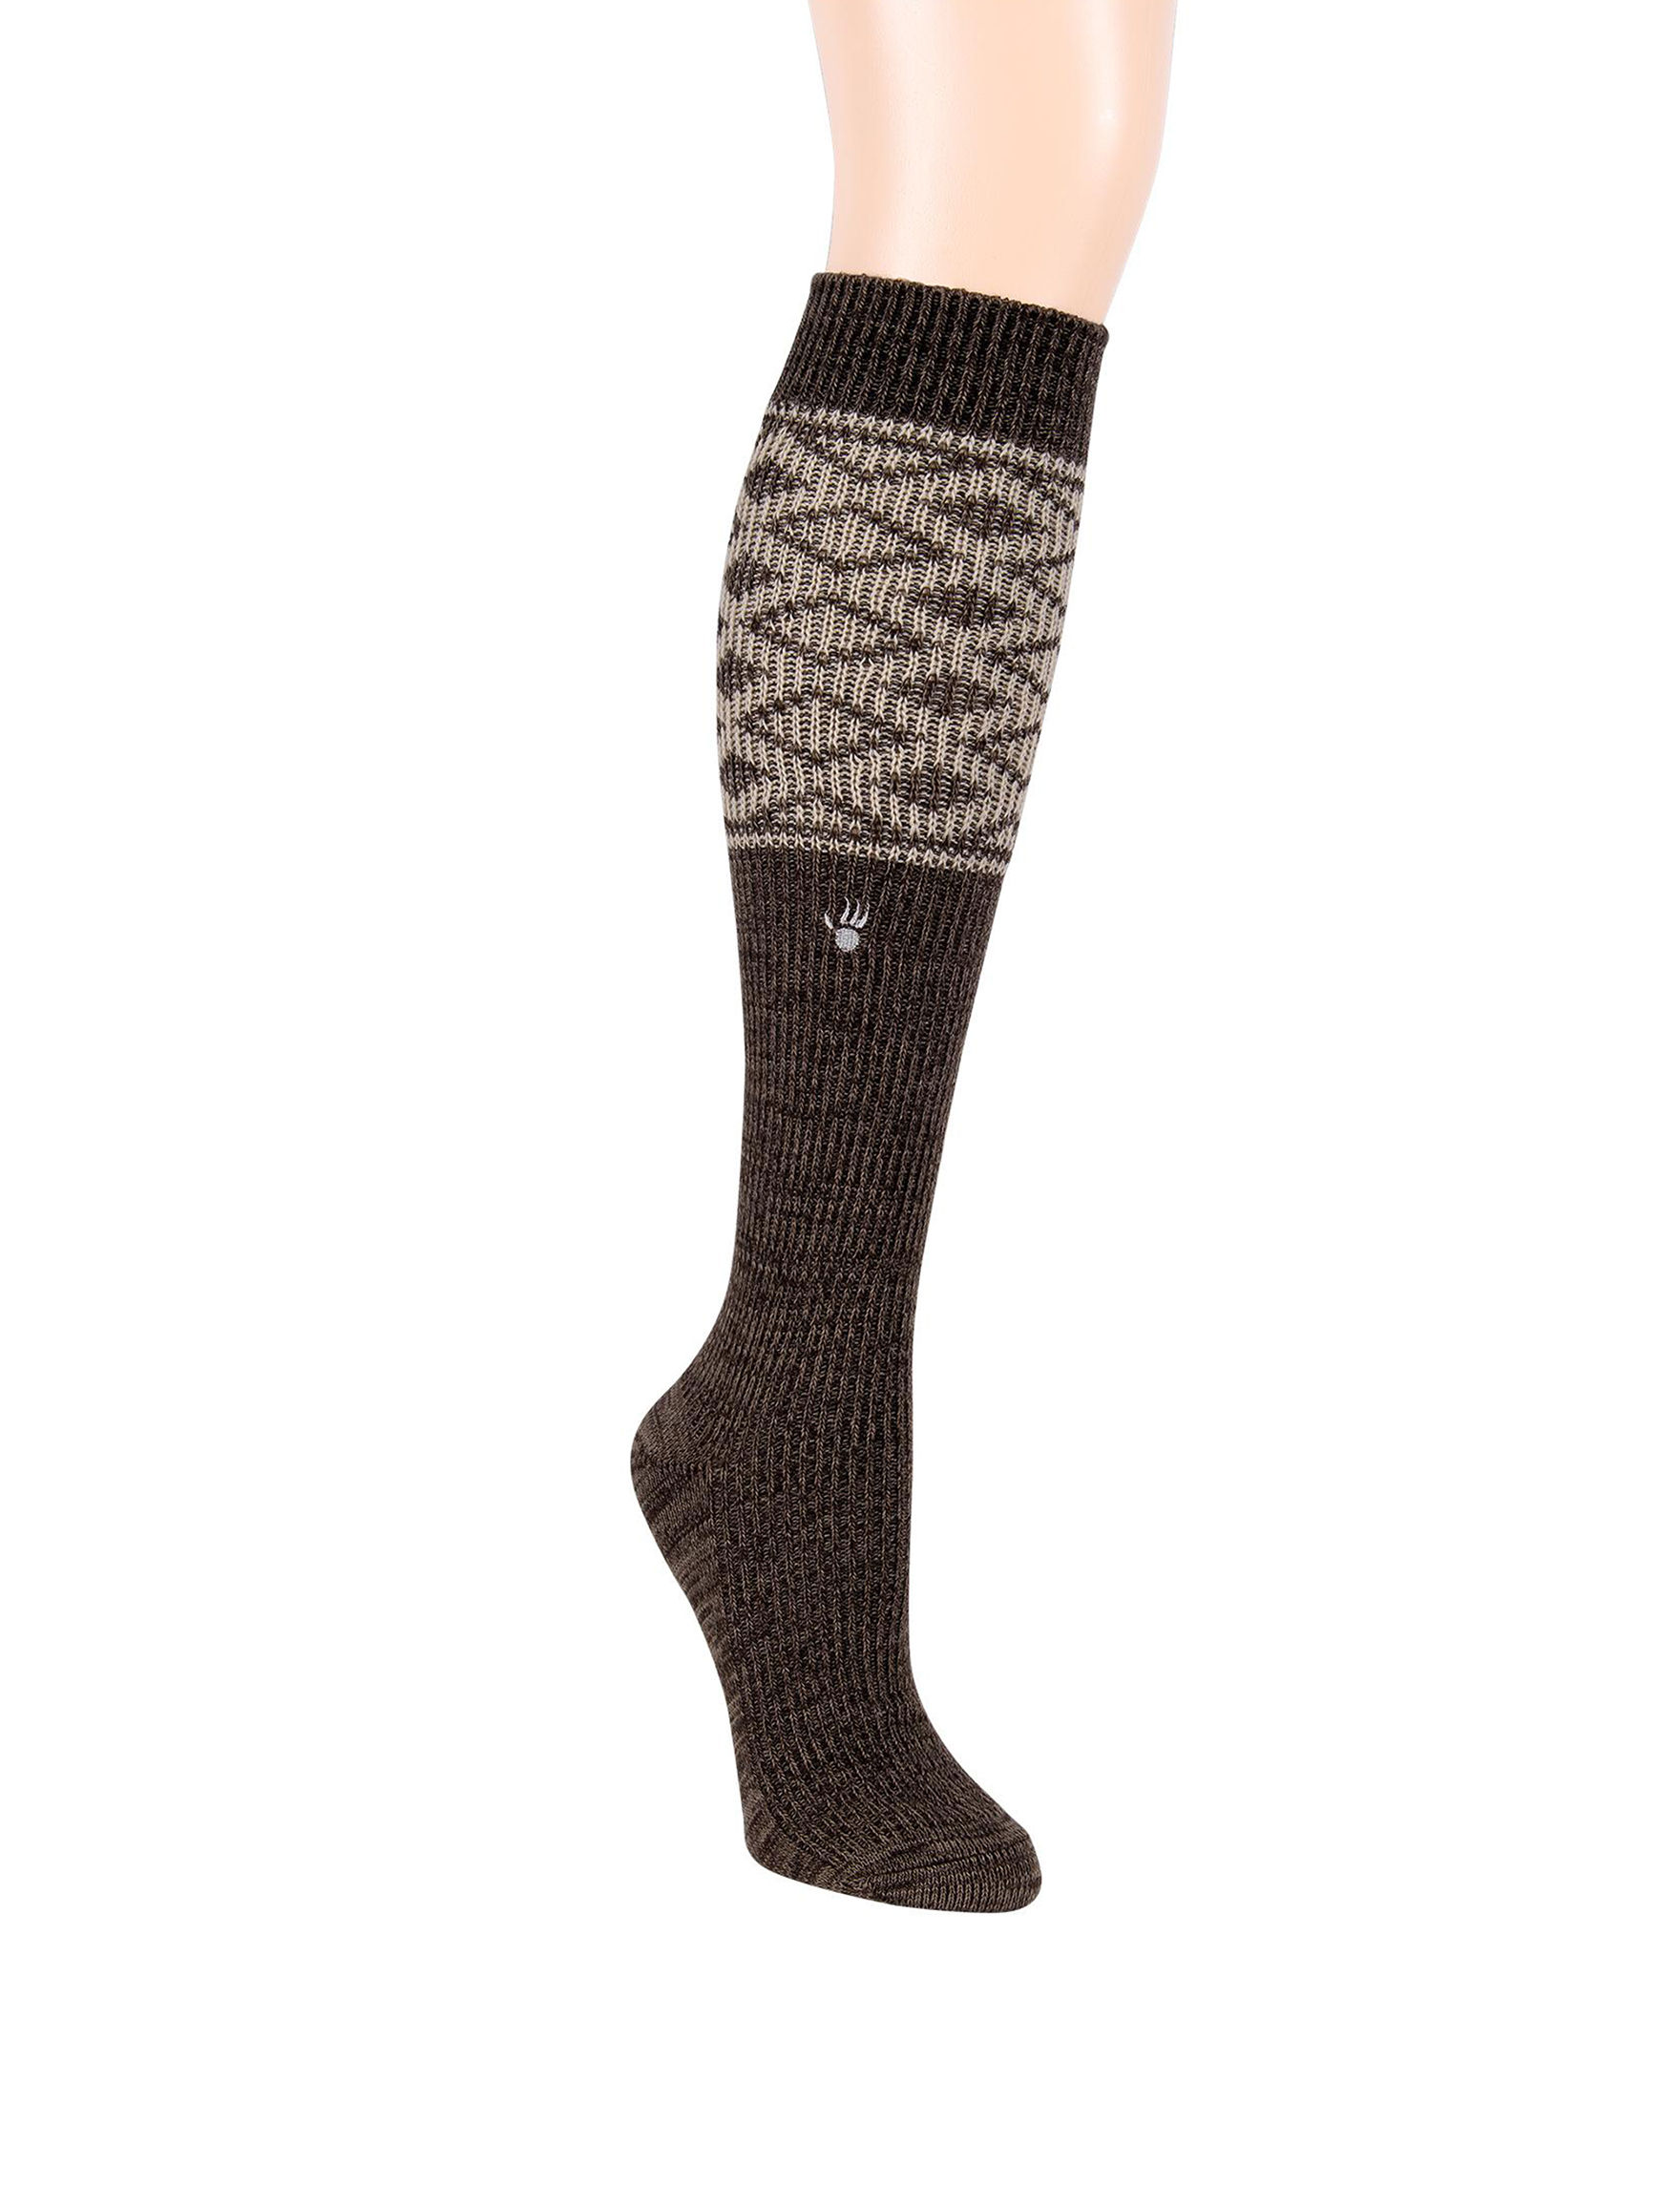 Bearpaw Multi Socks